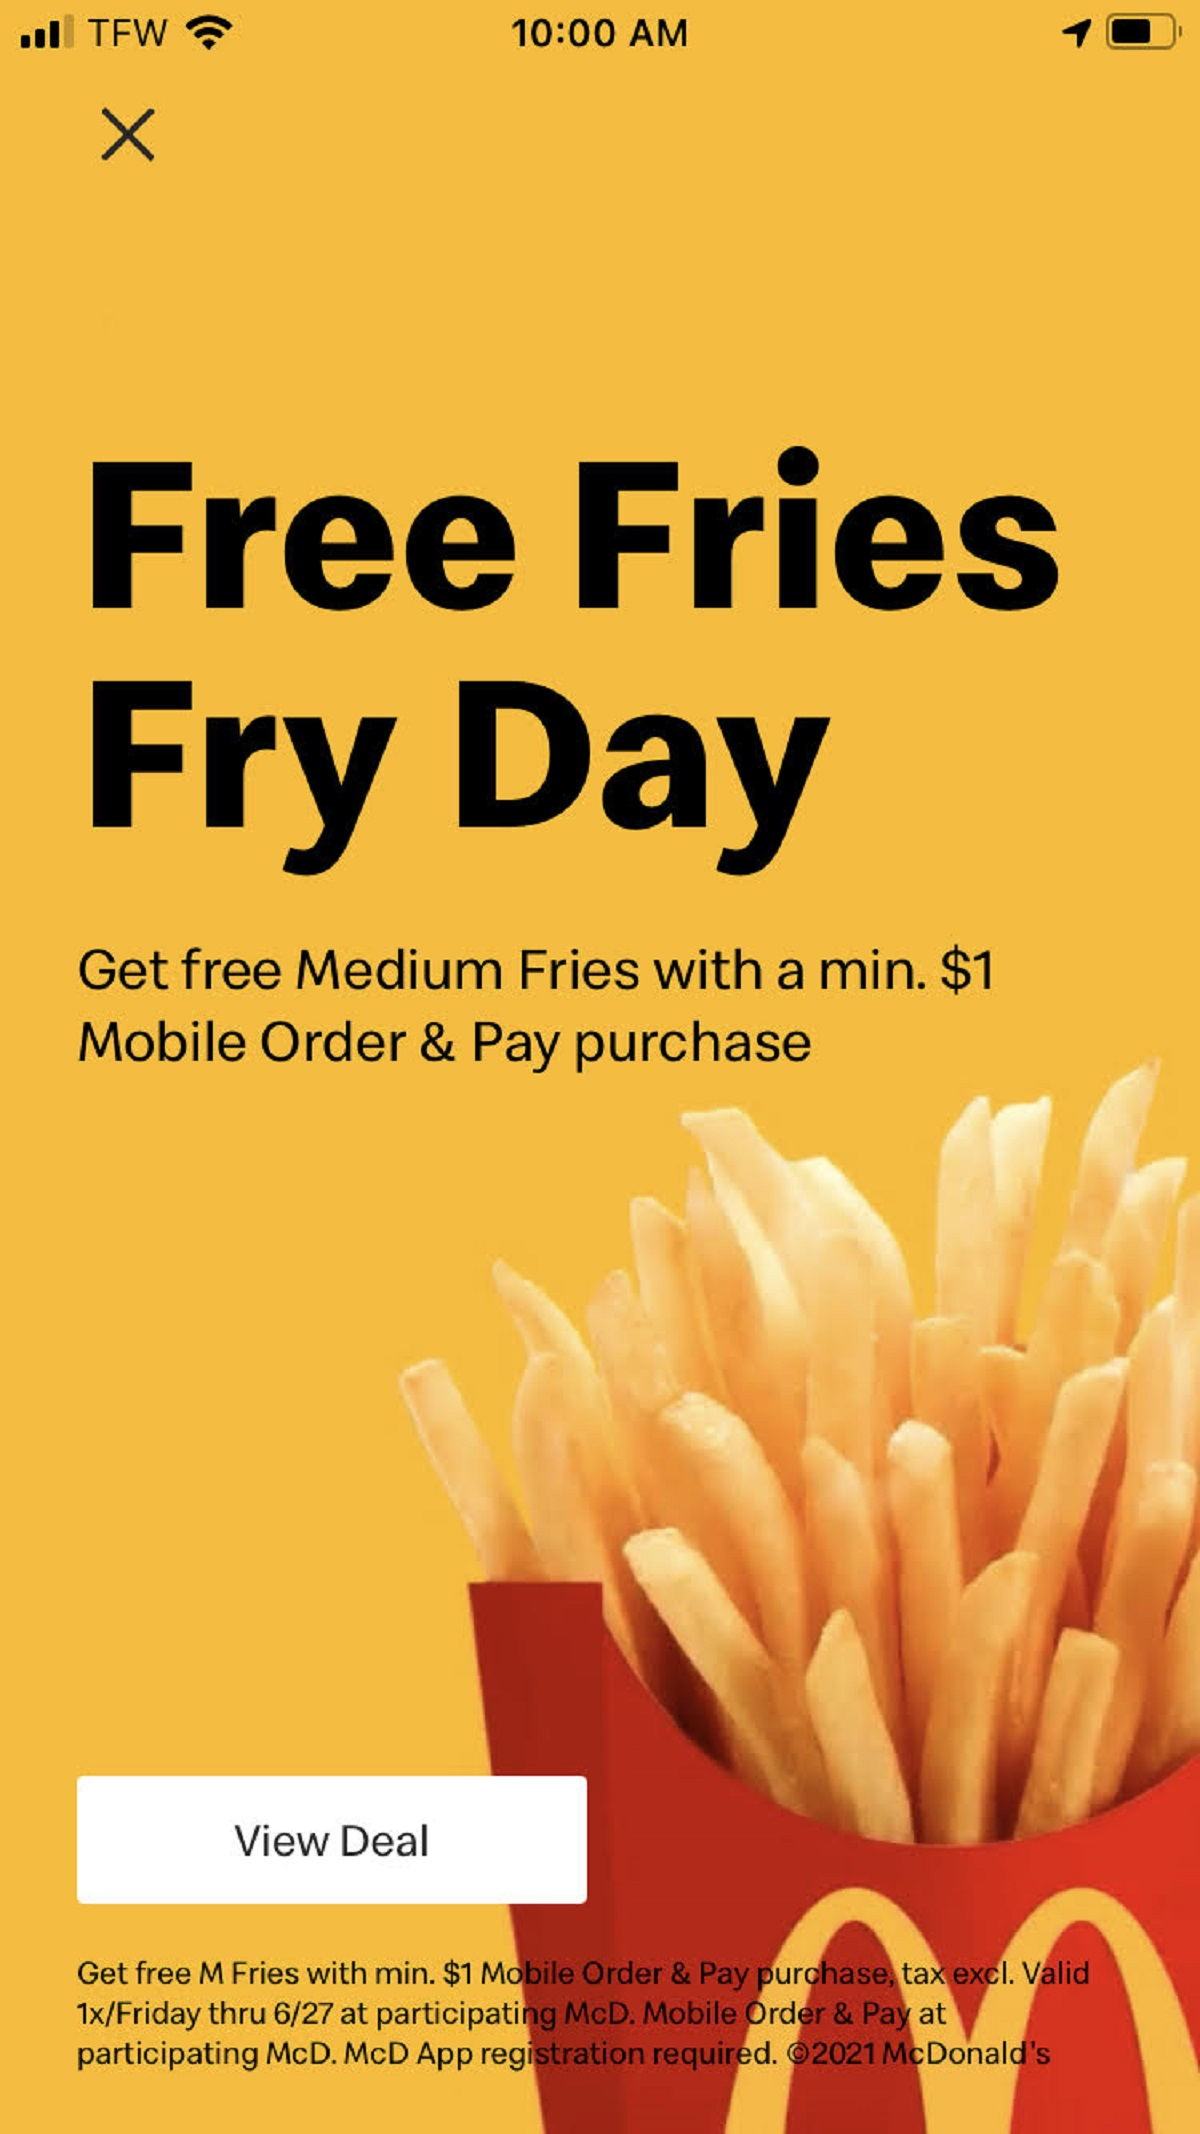 McDonald's Free Fry Day